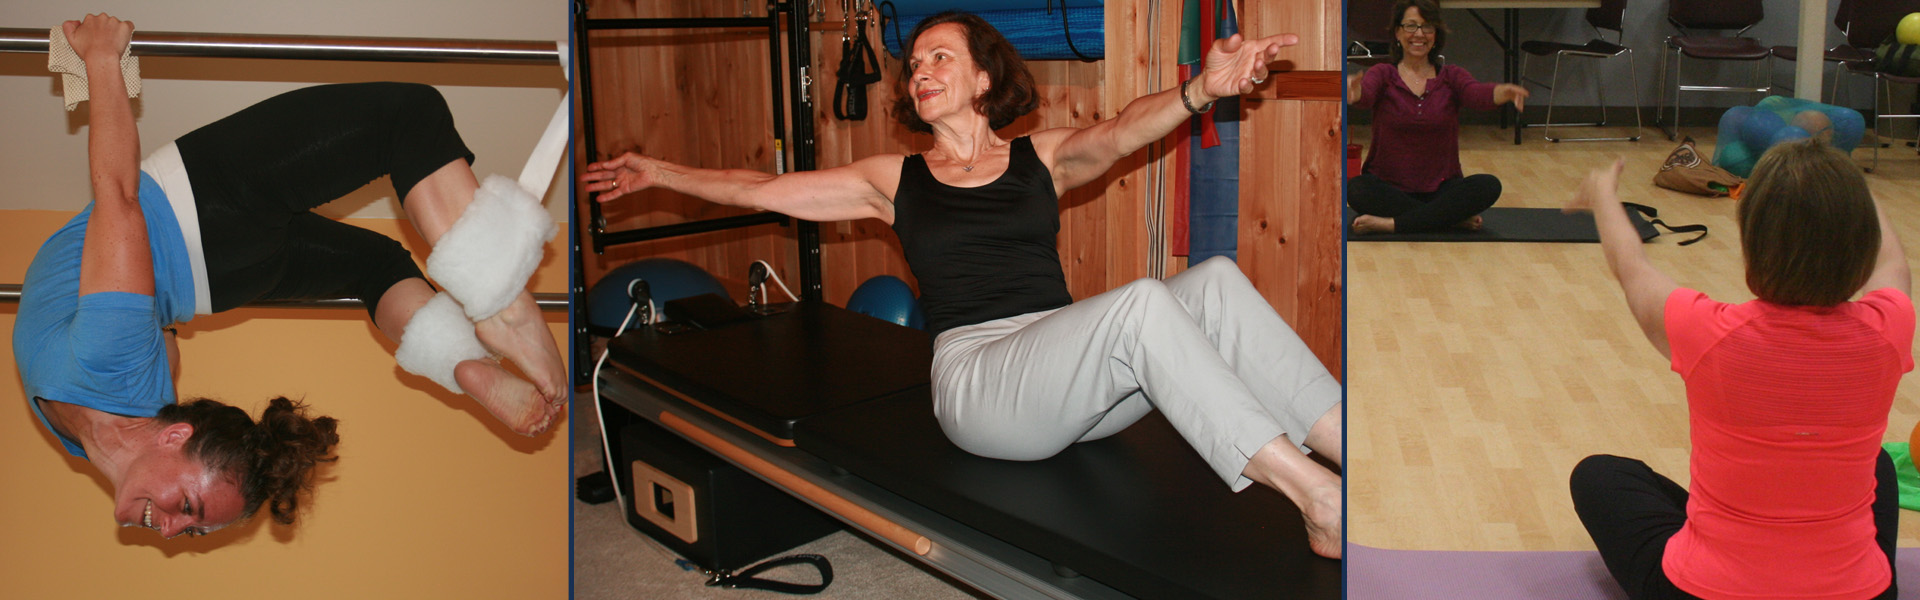 Personal Euphoria - Pilates Classes in Connecticut